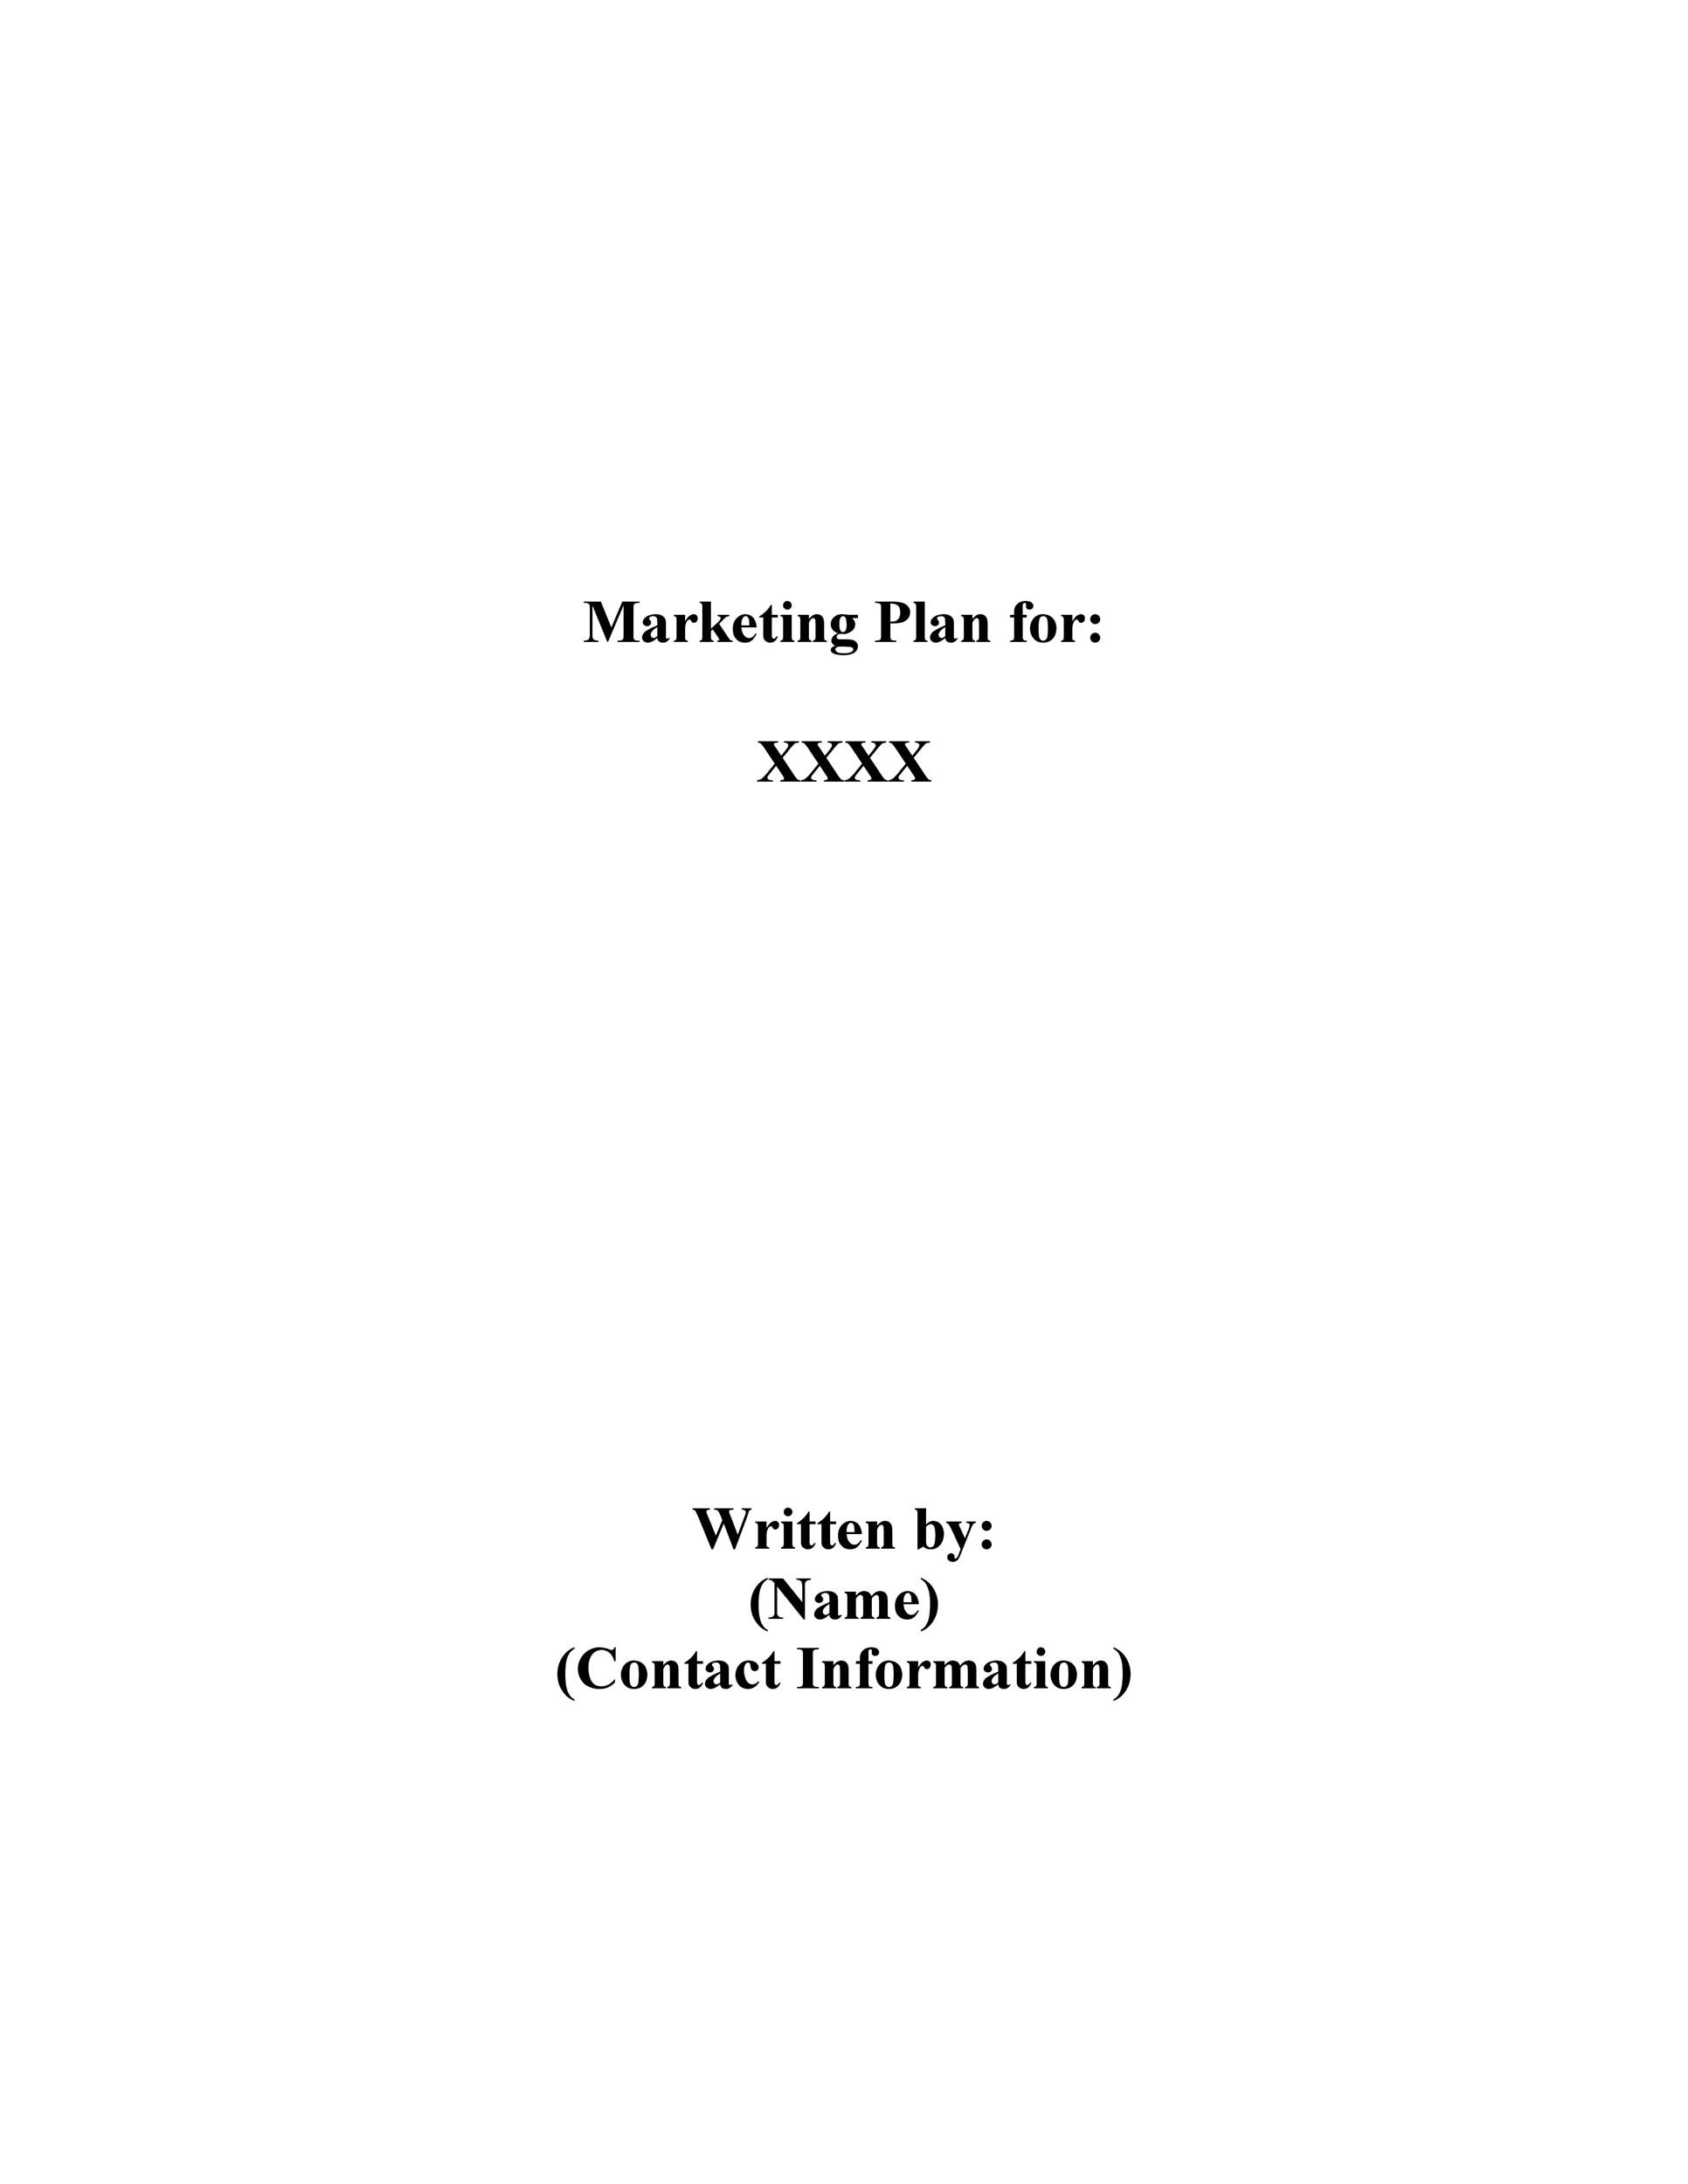 Free Marketing Plan Template 02